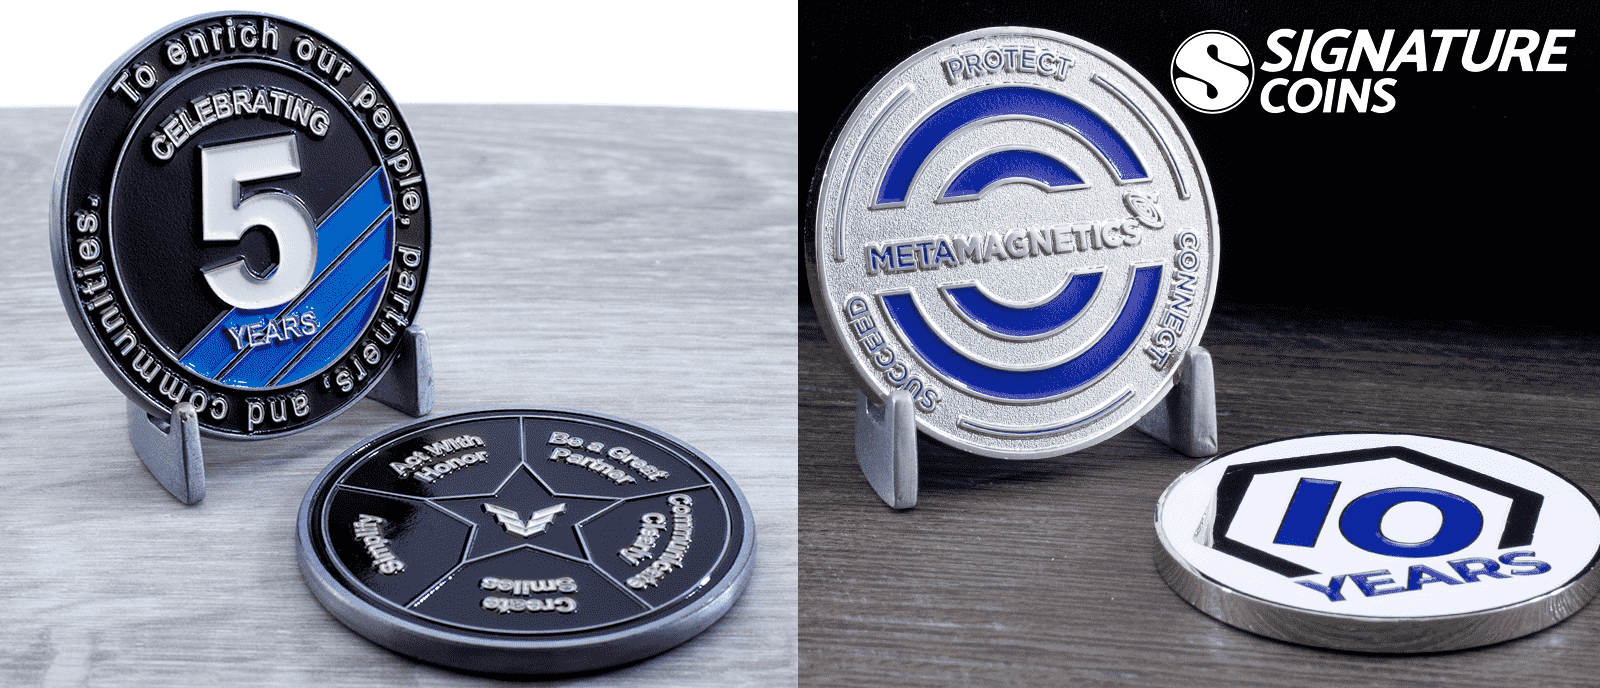 years of service challenge coins by Signaturecoins4